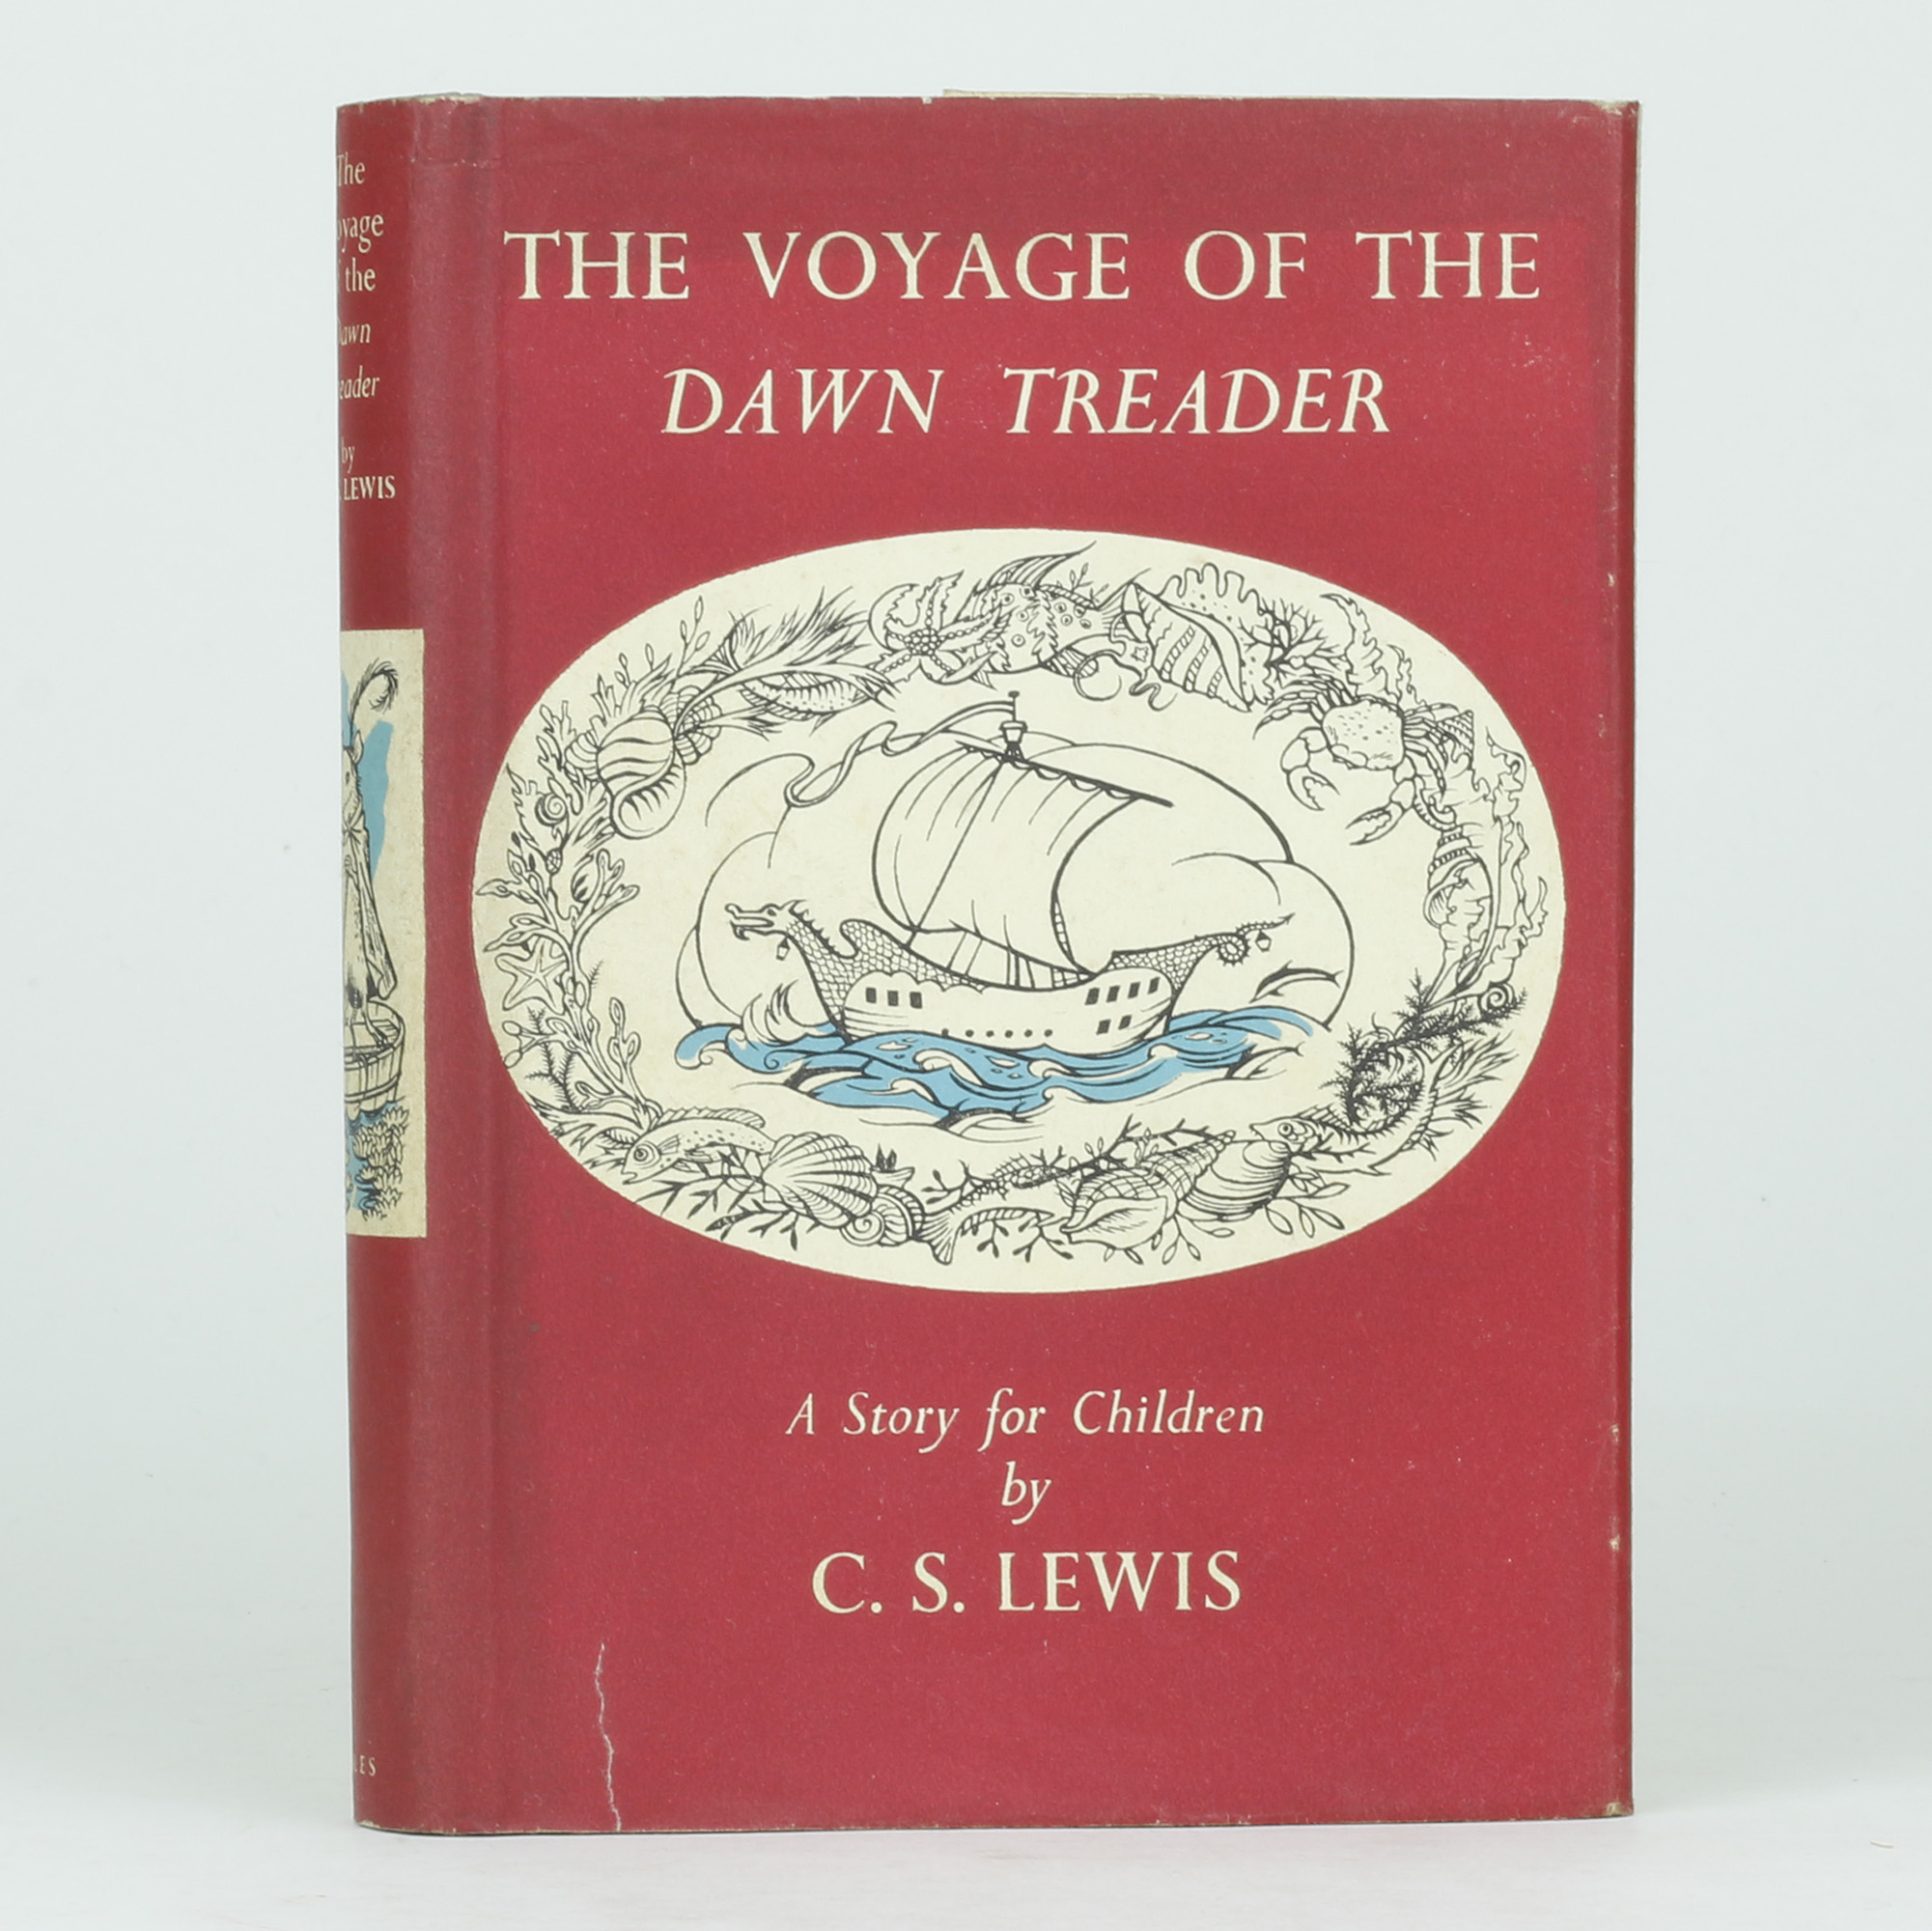 A summary of the voyage of the dawn treader by cs lewis